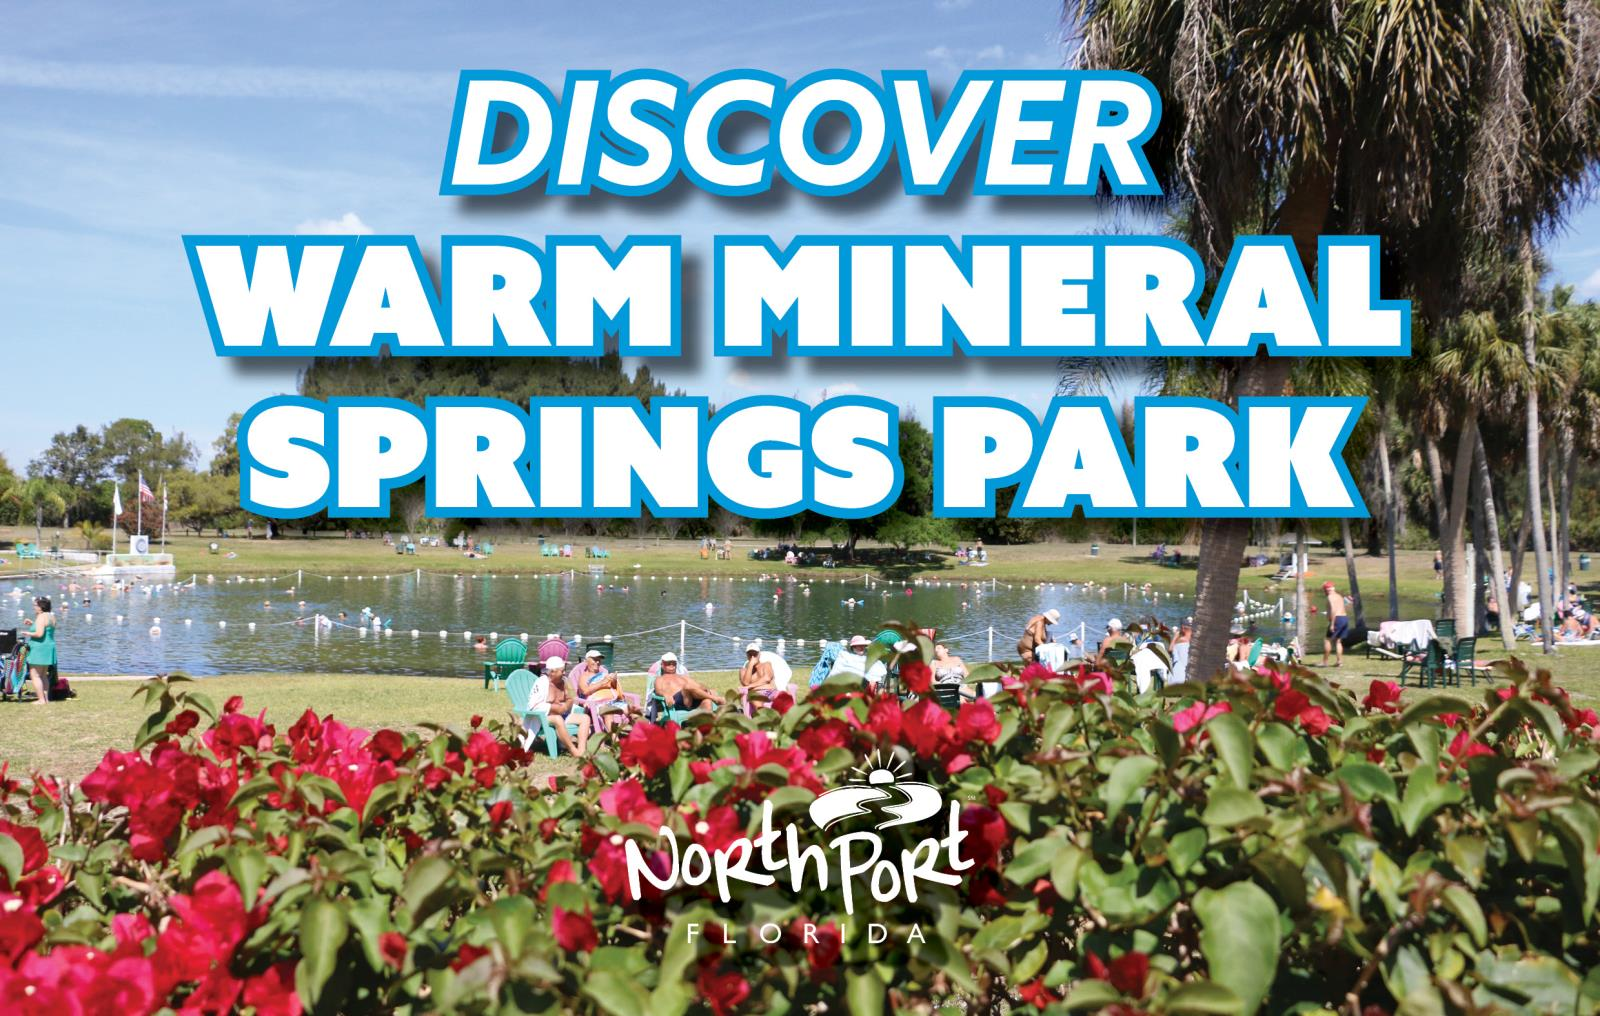 Photograph of Warm Mineral Springs Park with the words